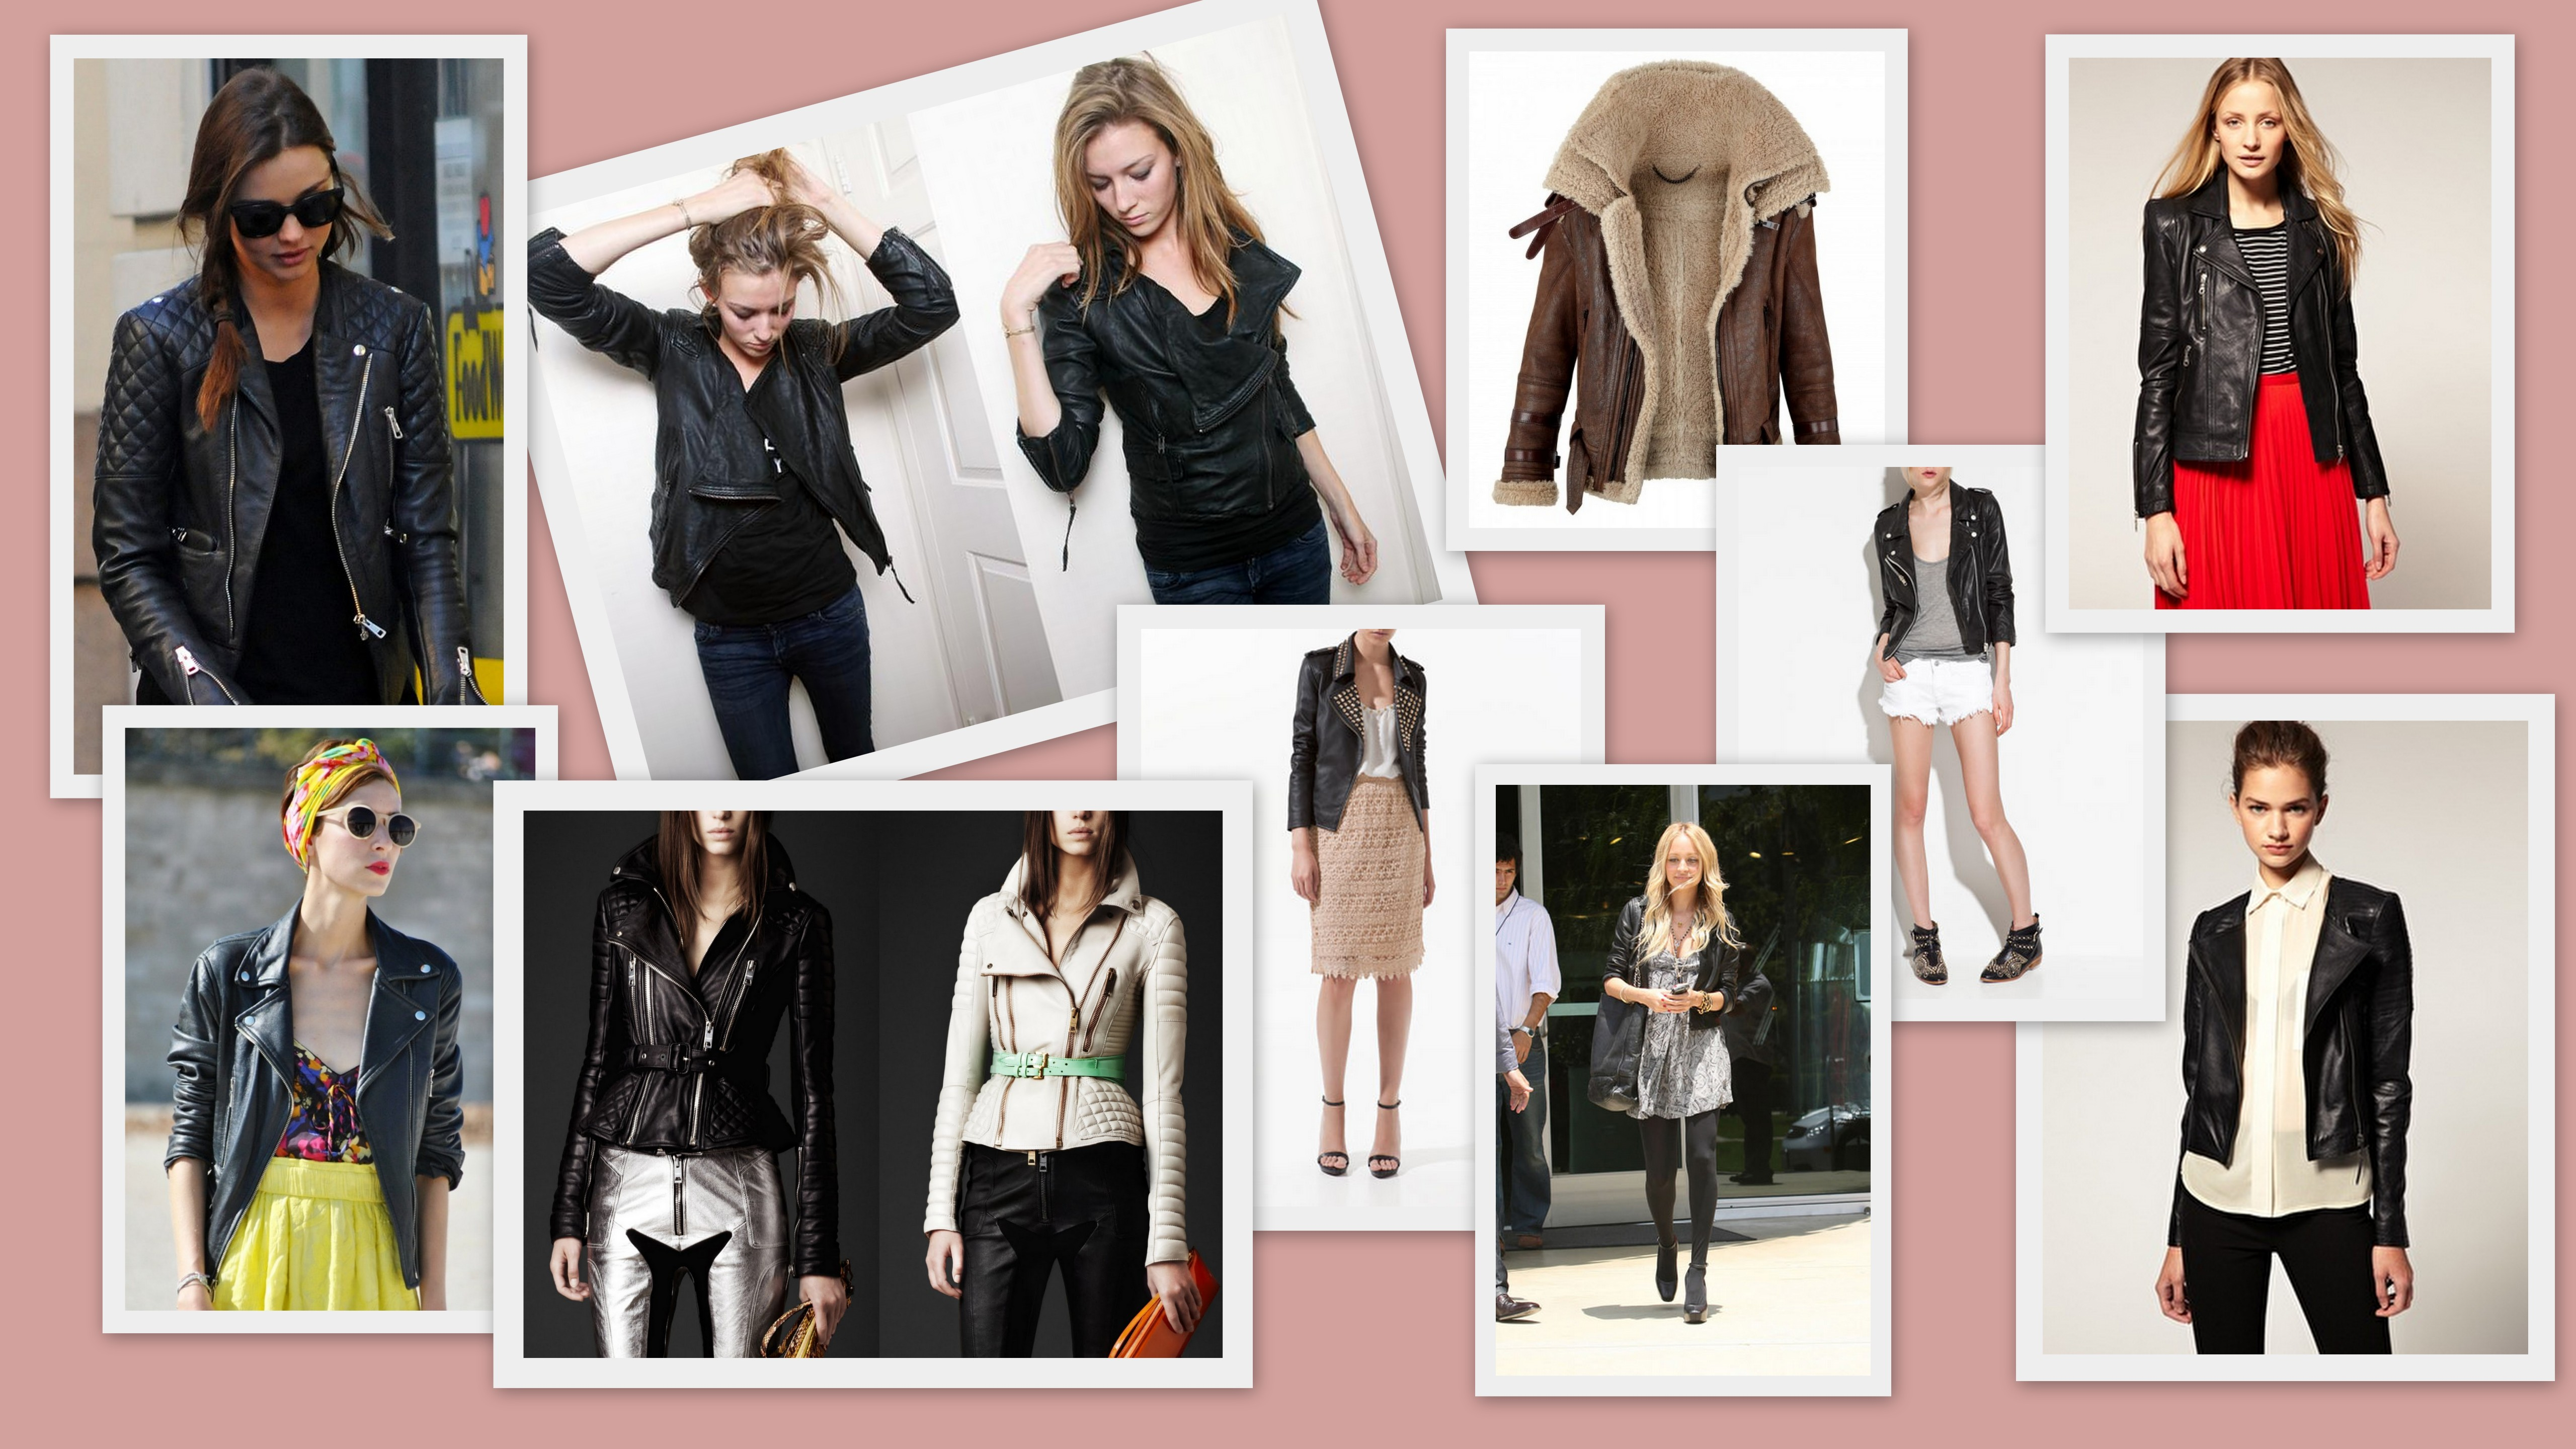 Mixture of Leather jacket styles and brands including: Balenciaga, Burberry Porseum, Whisltes, All Saints and Zara